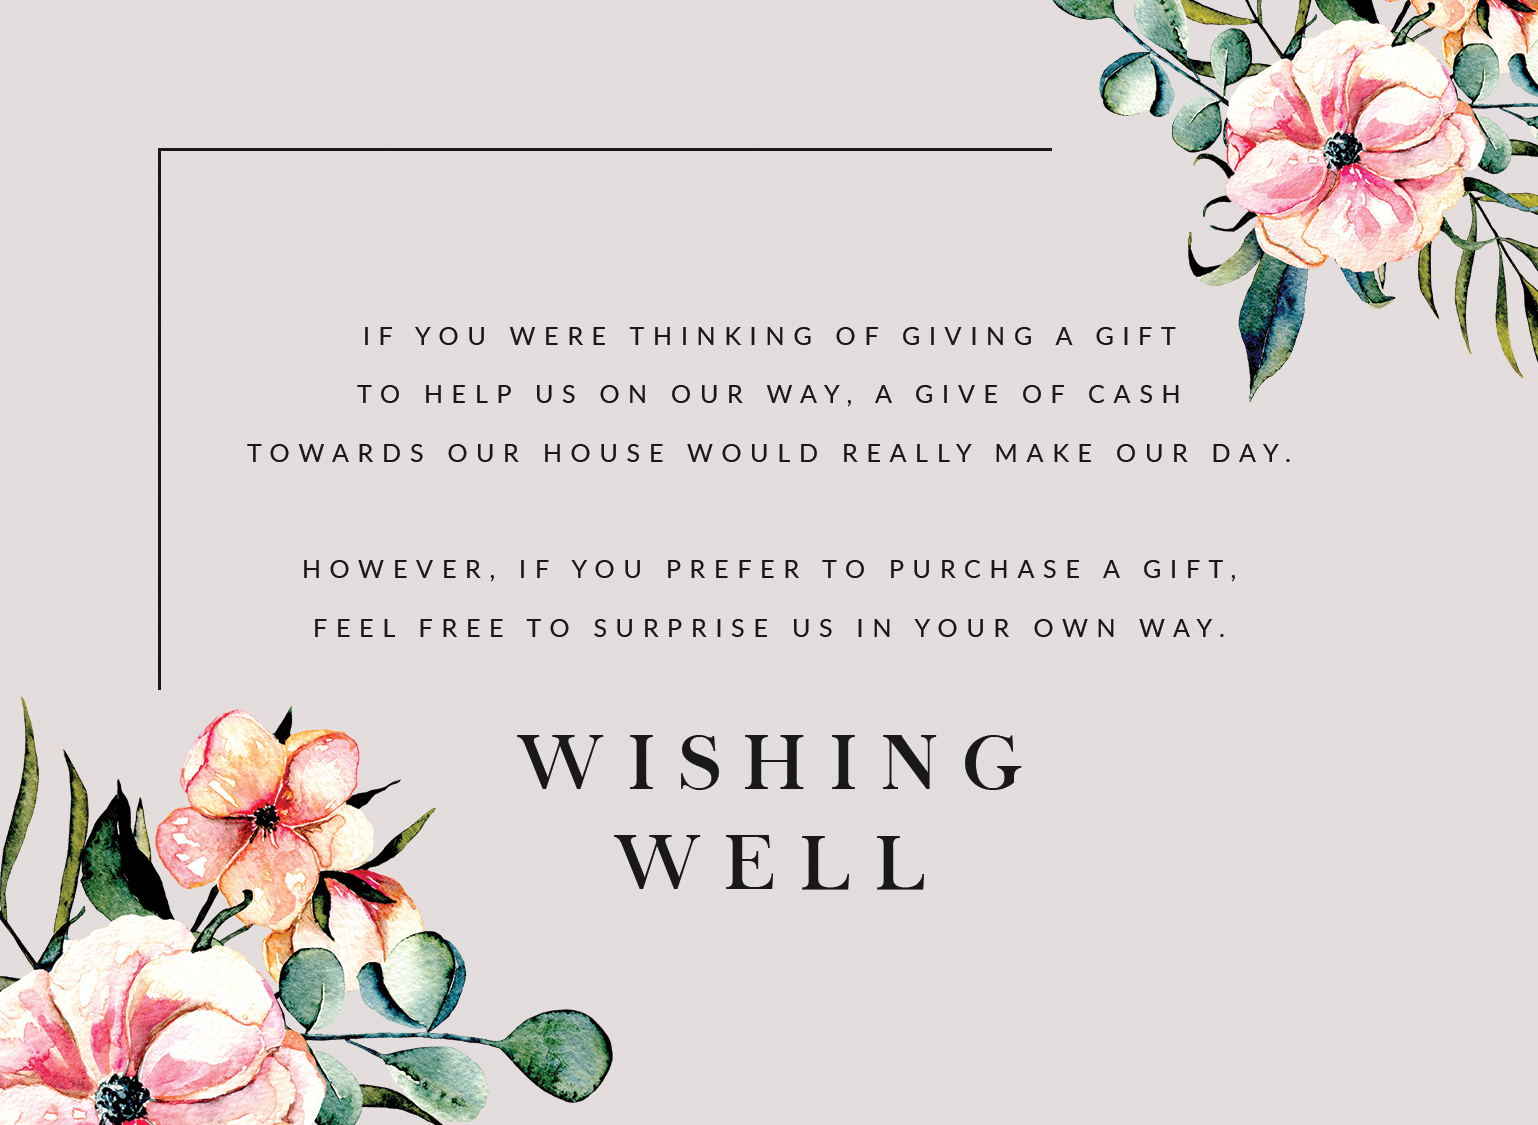 Wishing Well - US A1 CARD SIZE - COLOR 3_RGB.png